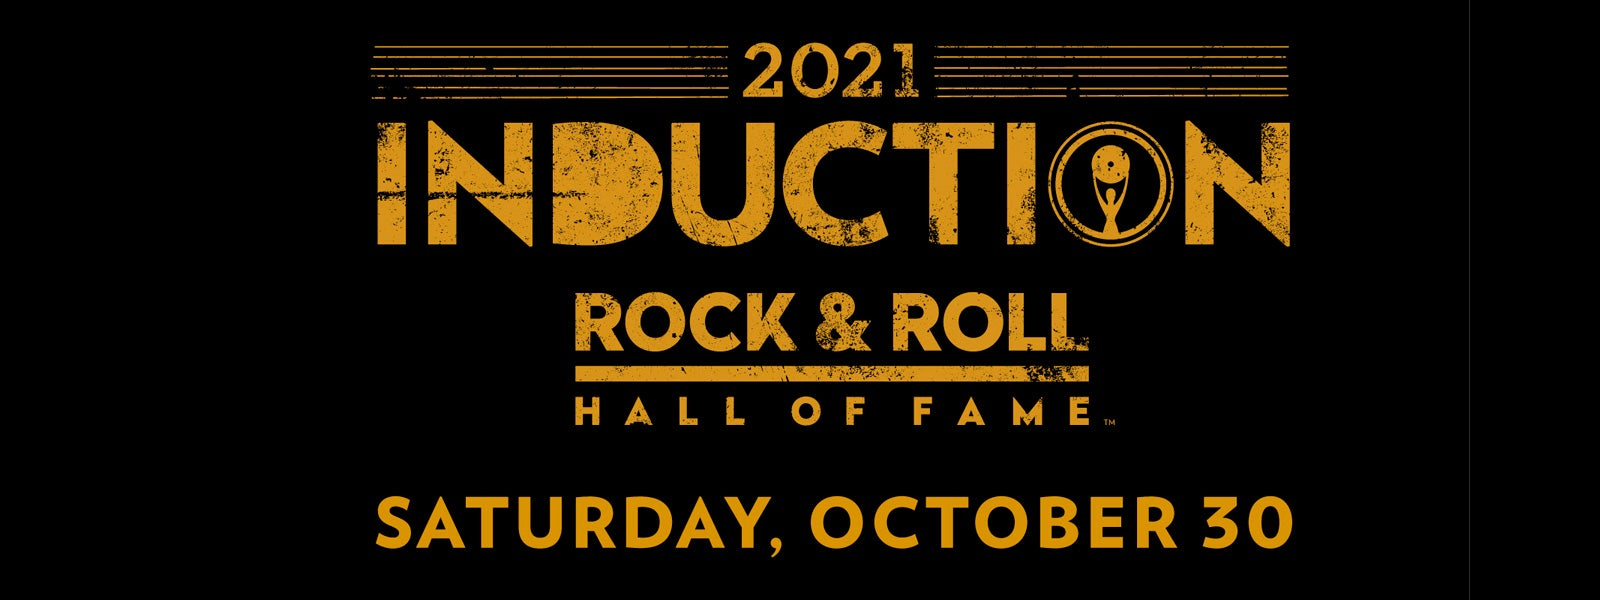 Rock & Roll Hall of Fame Induction Ceremony